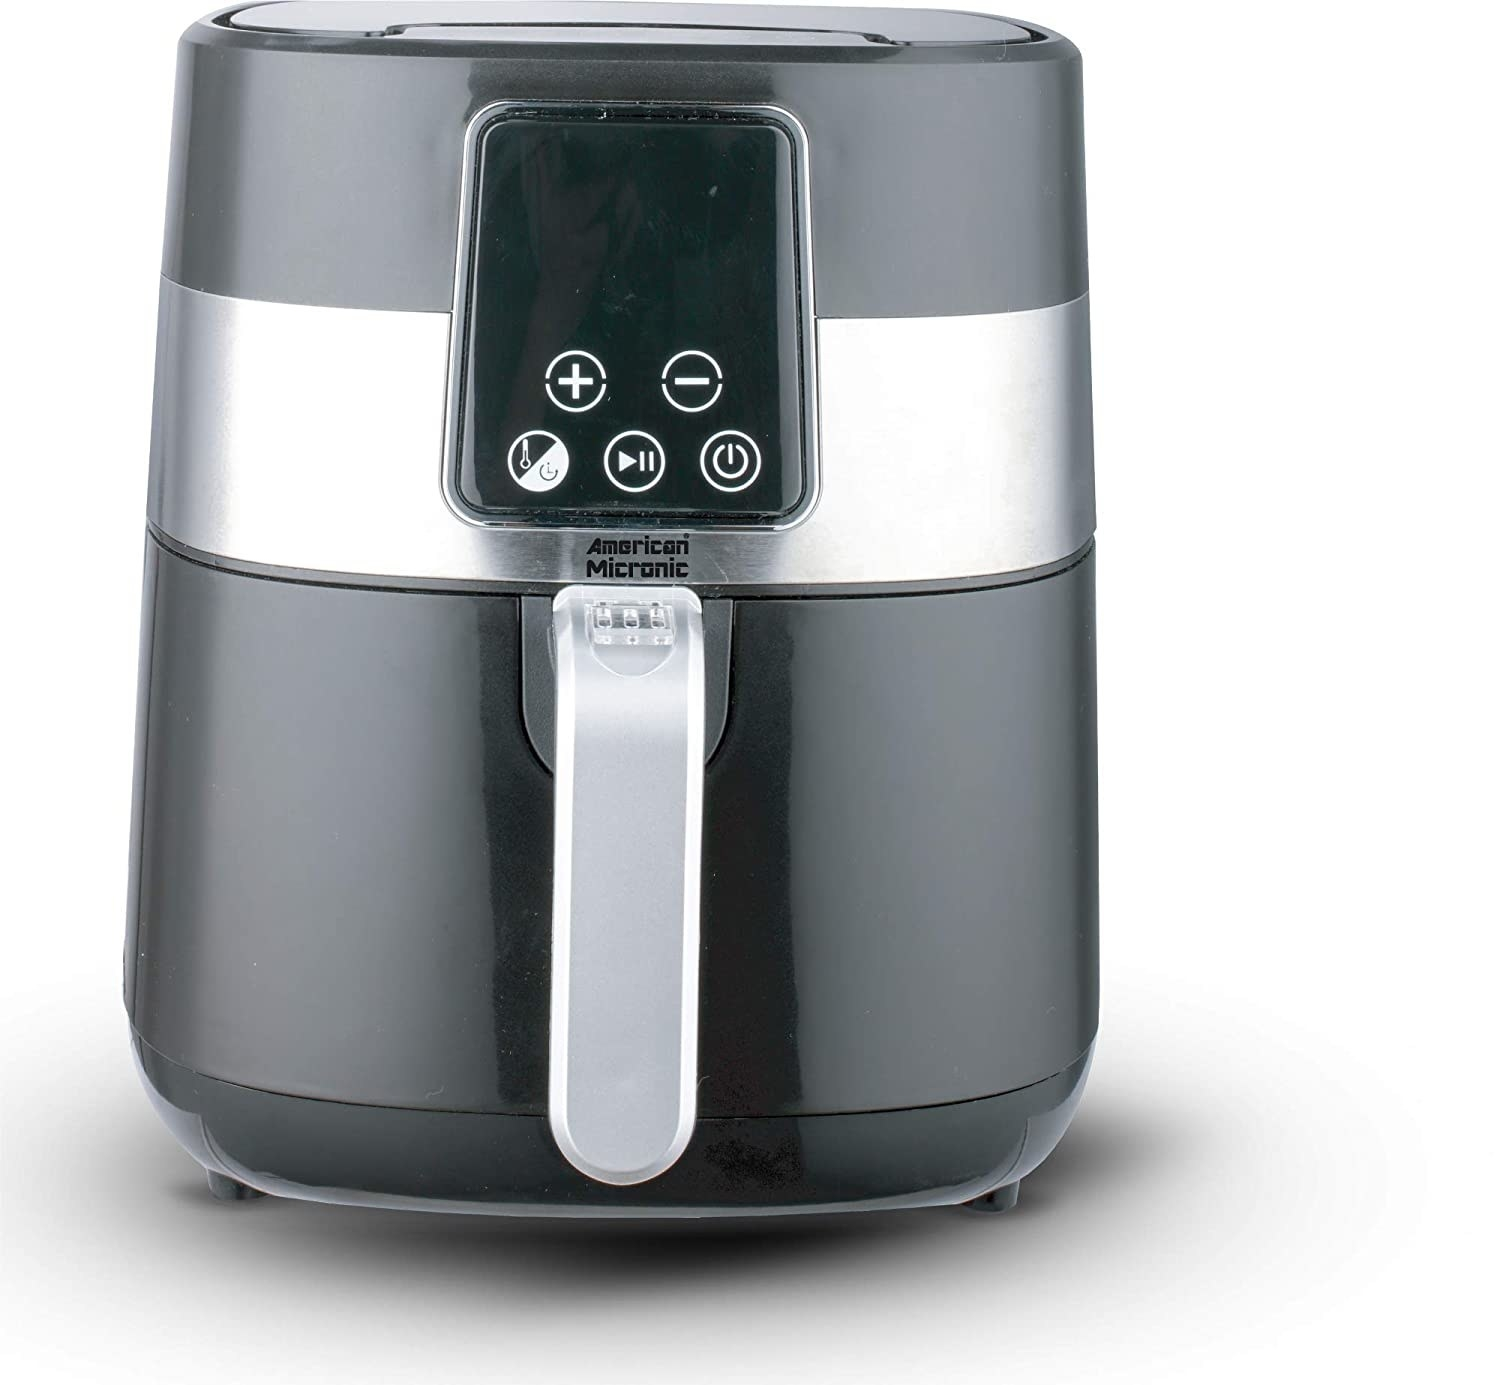 A silver and white air fryer